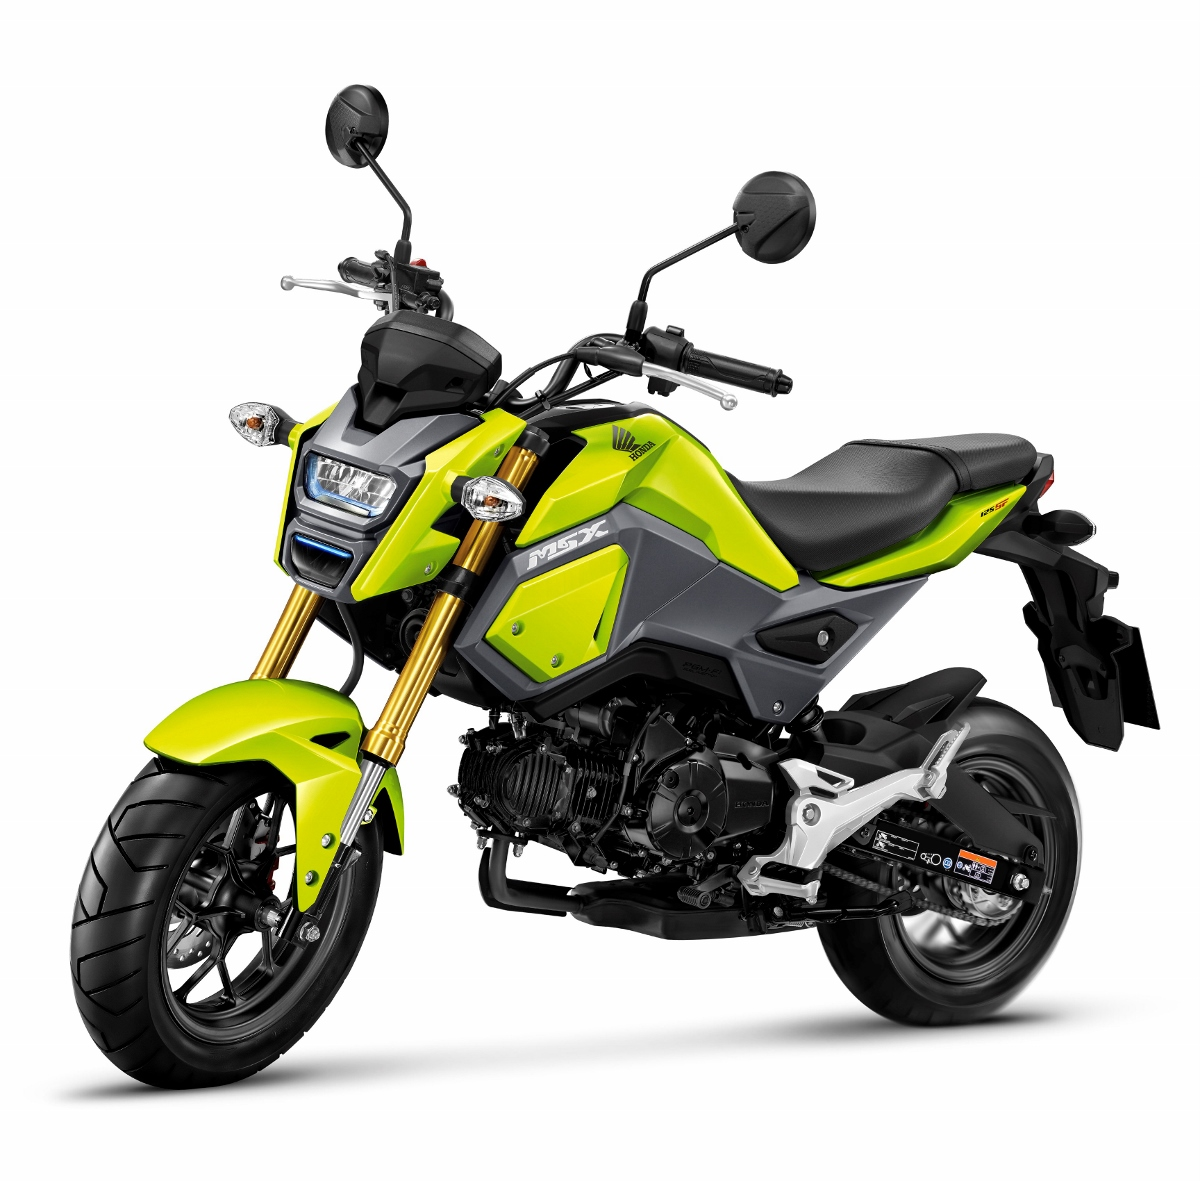 Honda MSX125 Review / Specs - Grom Changes Coming to the USA? | Honda ...